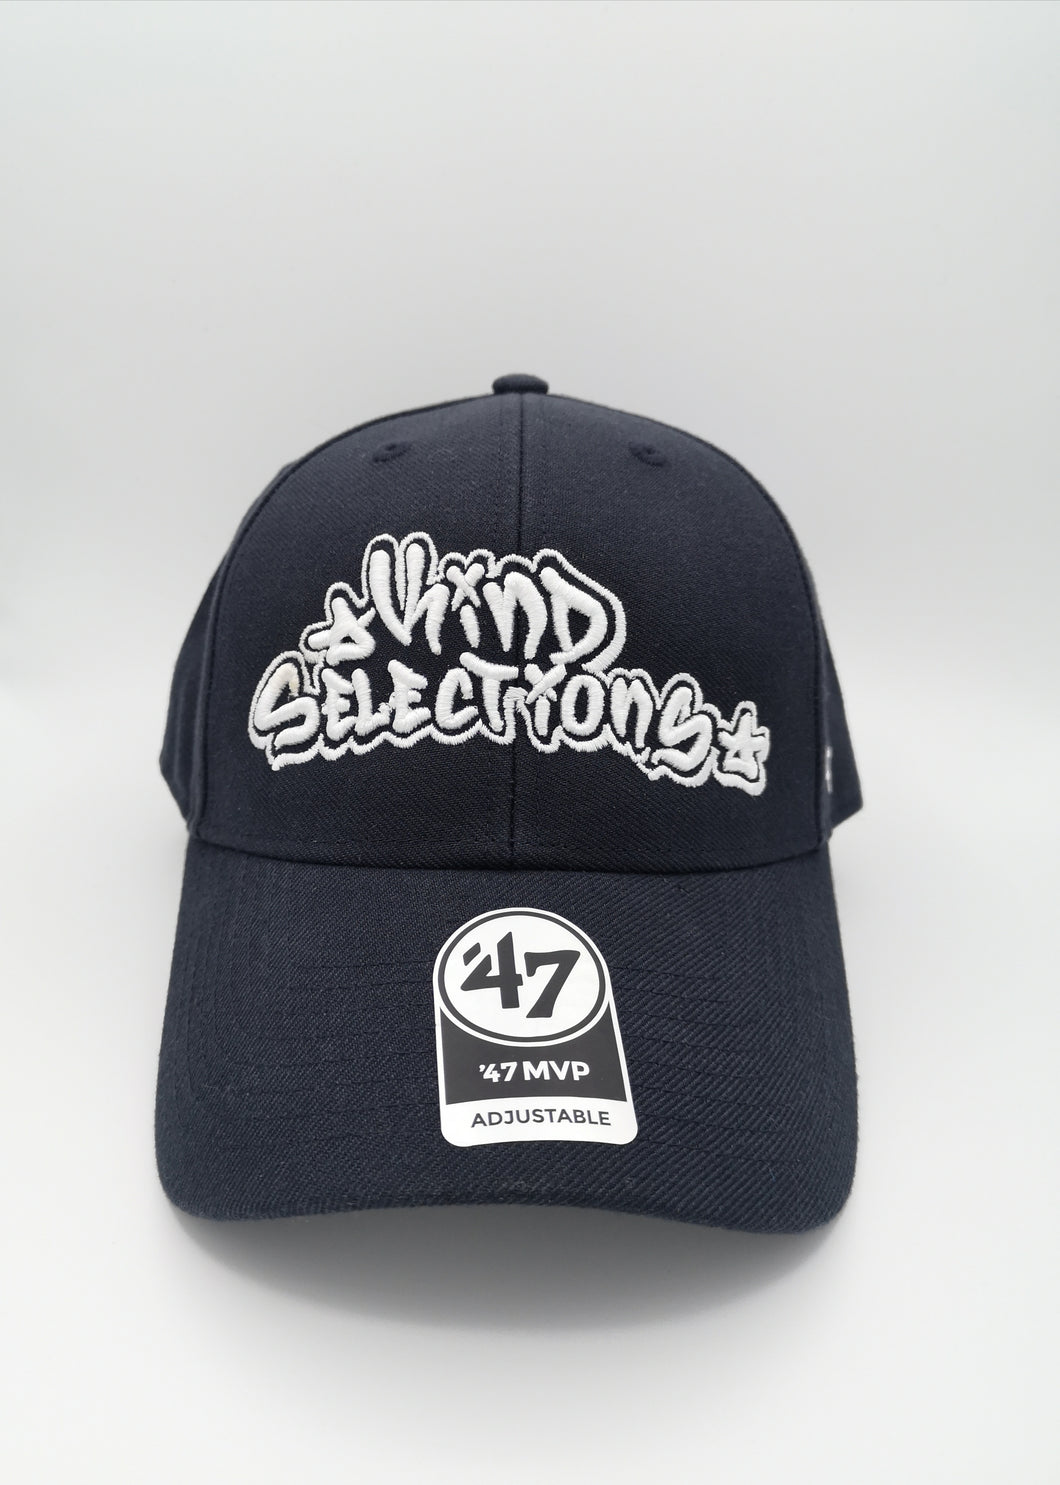 Kind Selections x Sloth King Classic '47 MVP Cap - Black